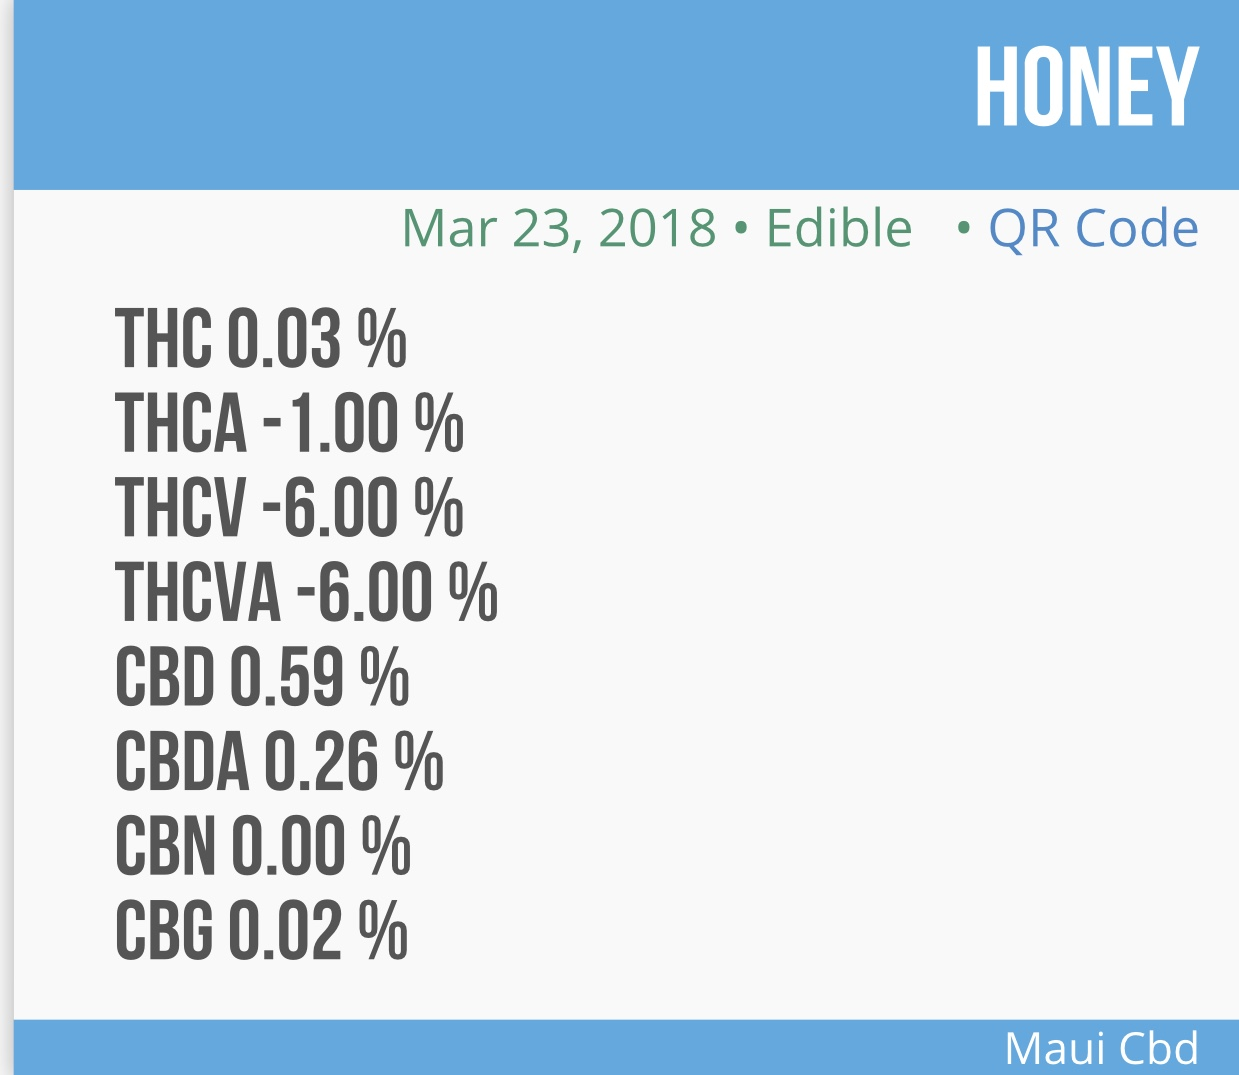 Our honey formulas are tested here. Far below the federal required level of thc, you will not have to be concerned about getting high. Our products will only help your natural bodies cannabinoid system to do its magic. Enjoy